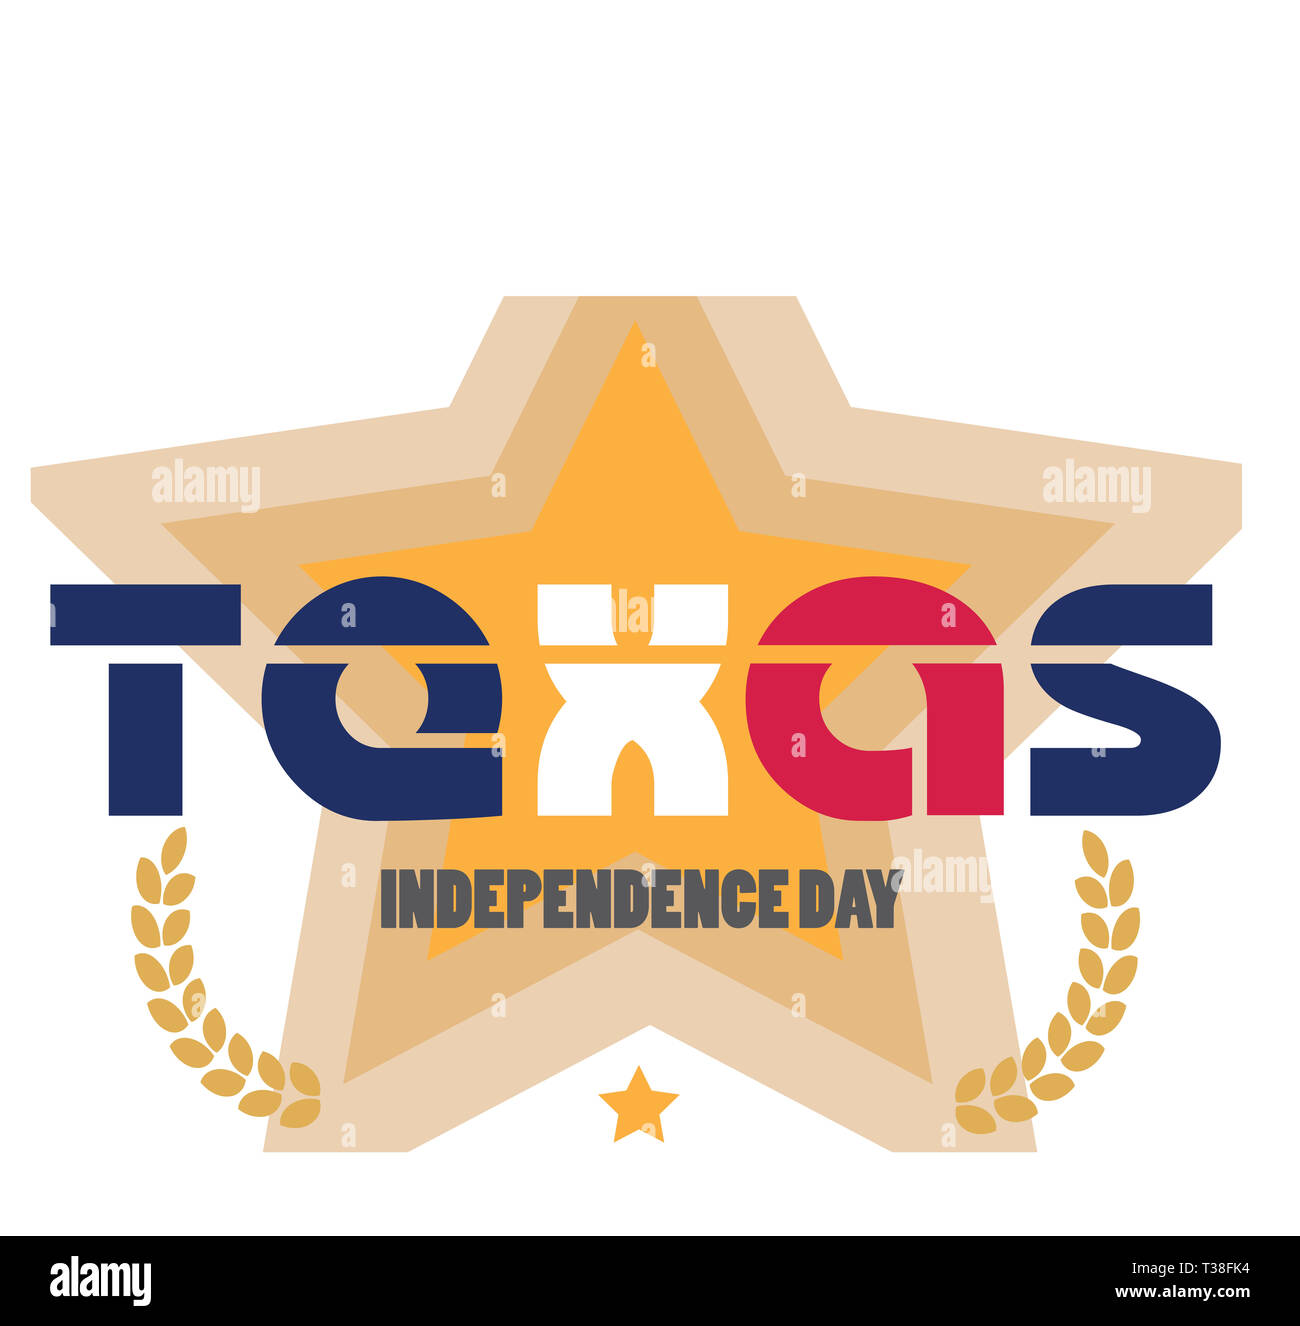 Mar_2_Texas Independence Day-1 - Stock Image